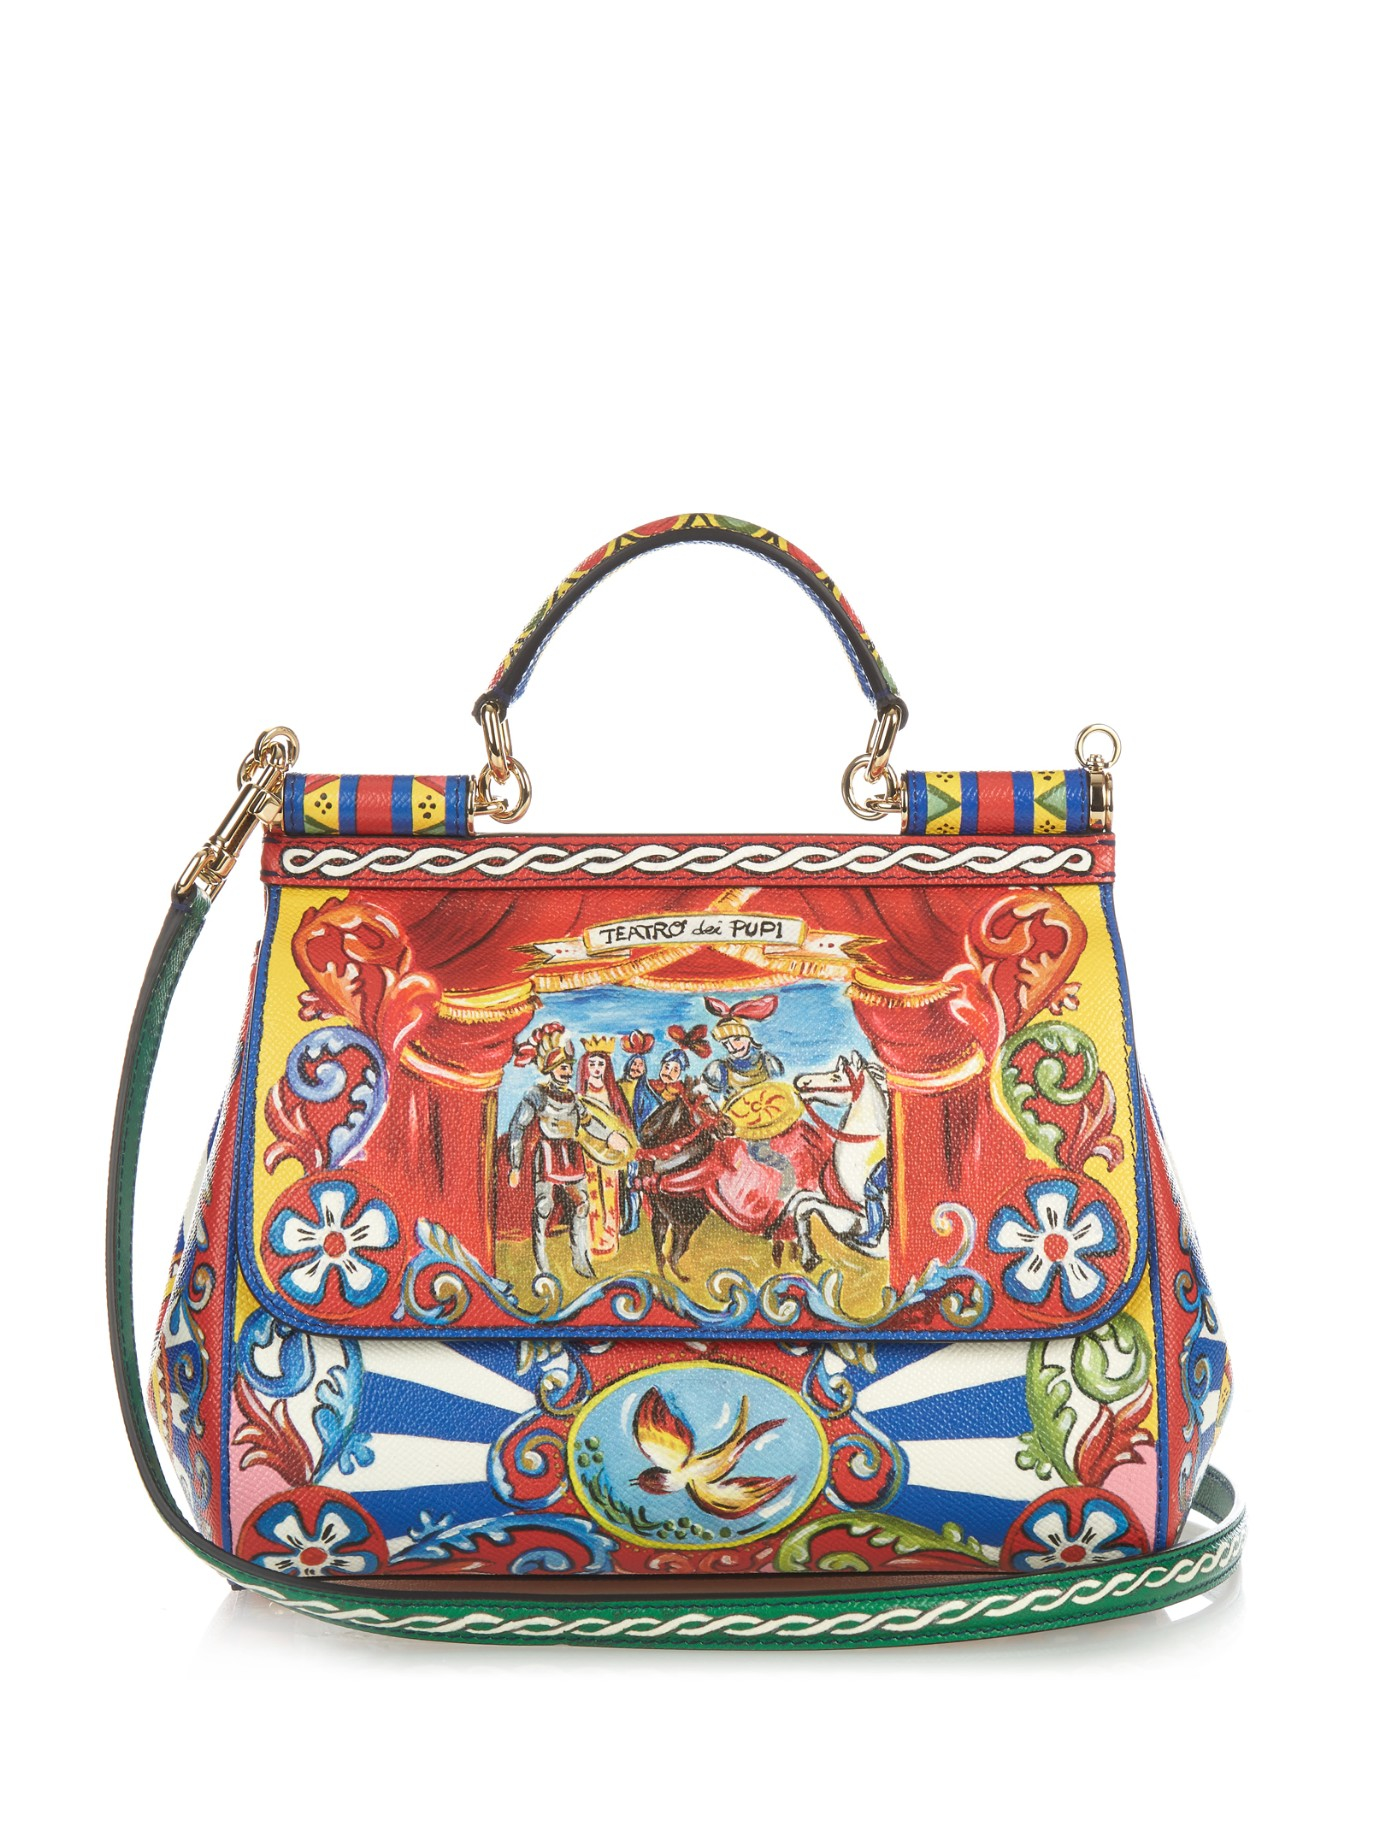 3115d1303844 Dolce   Gabbana Sicily Medium Carretto-print Leather Bag in Red - Lyst